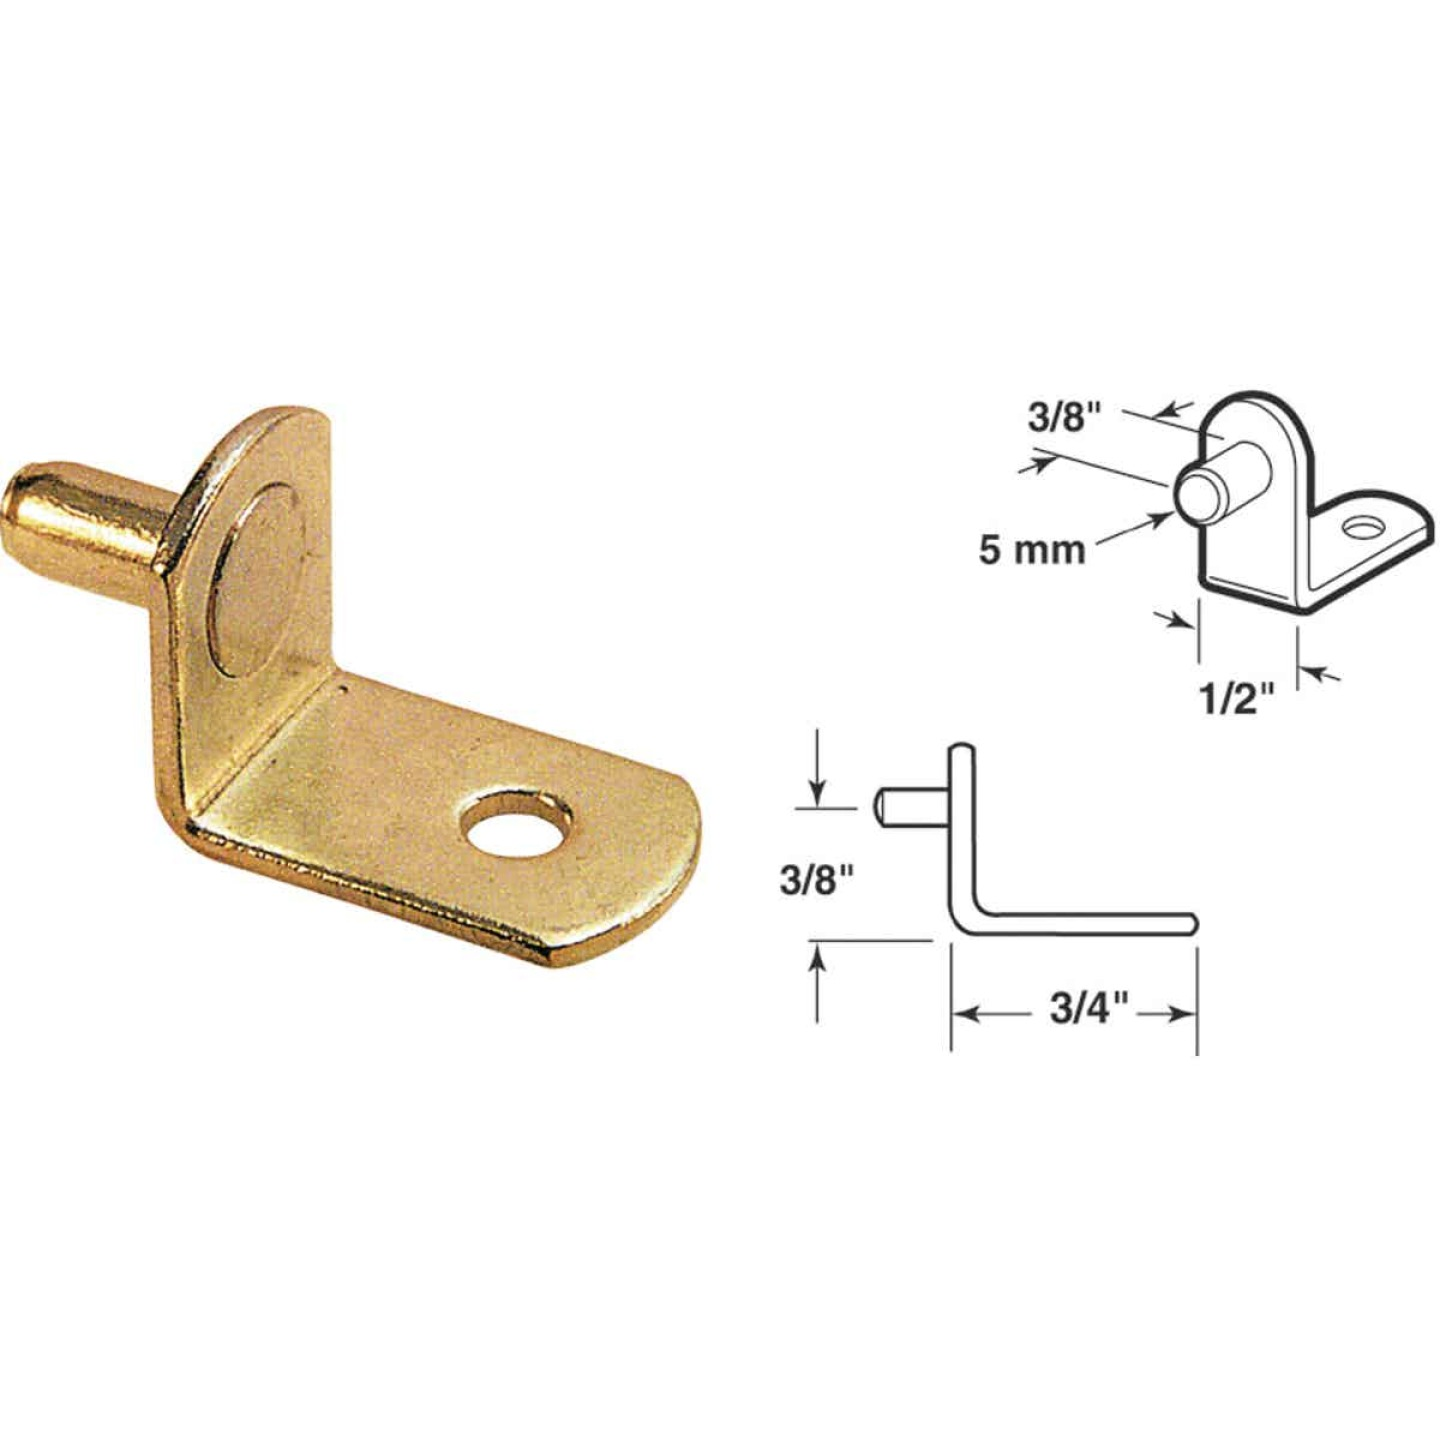 Prime-Line 5mm Brass Metal Shelf Support (8-Count) Image 1